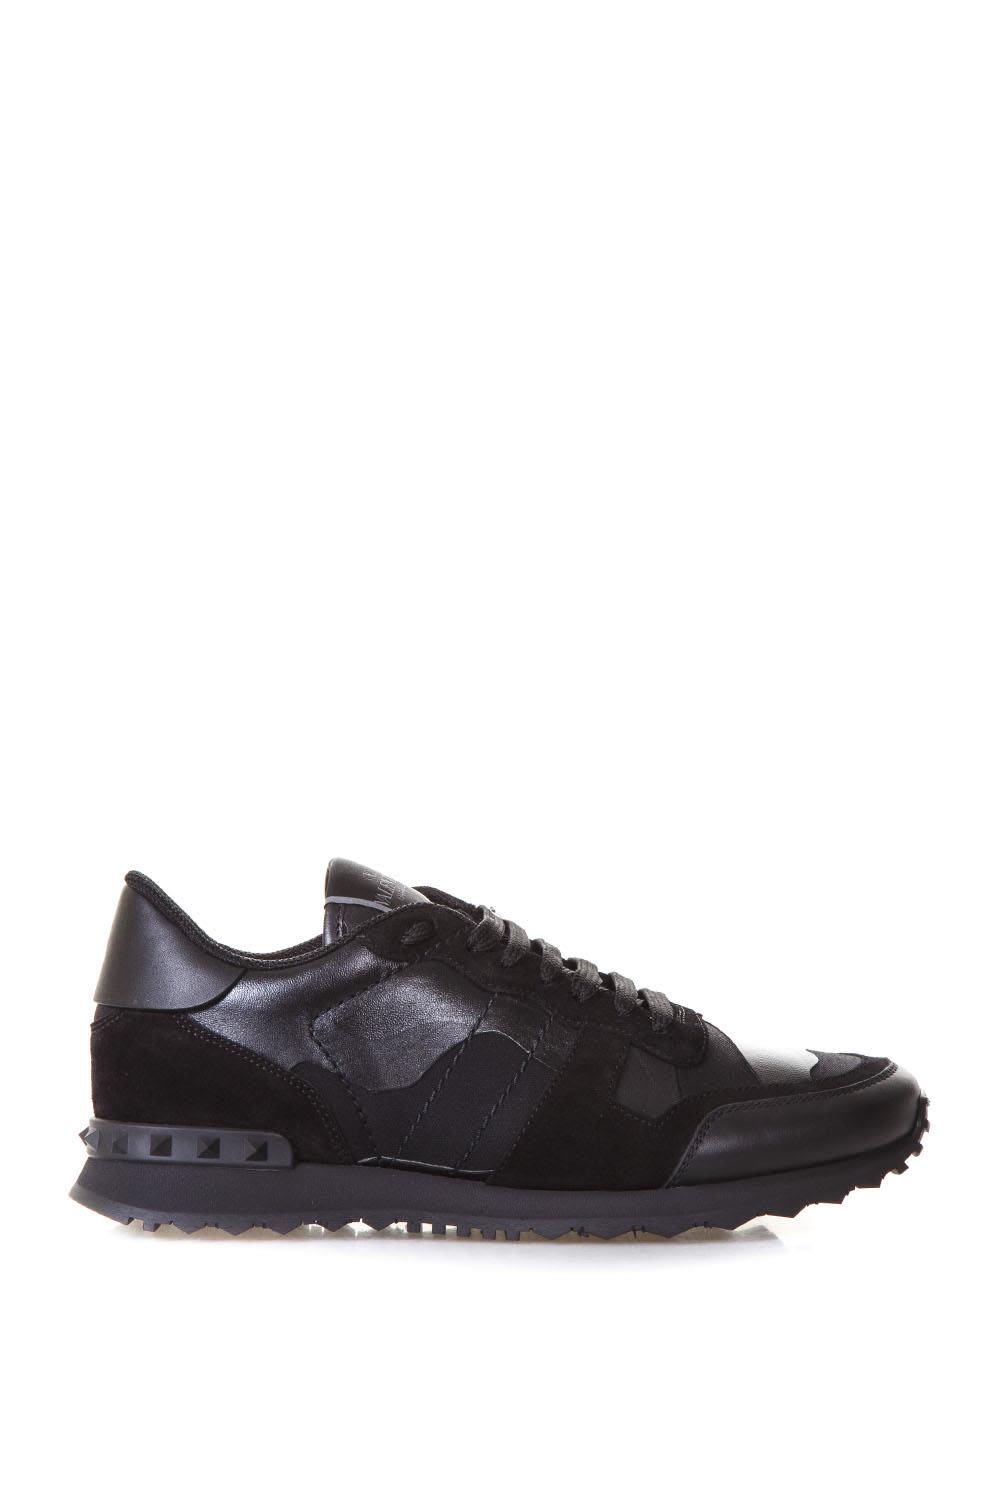 VALENTINO ROCKRUNNER BLACK LEATHER & SUEDE SNEAKERS